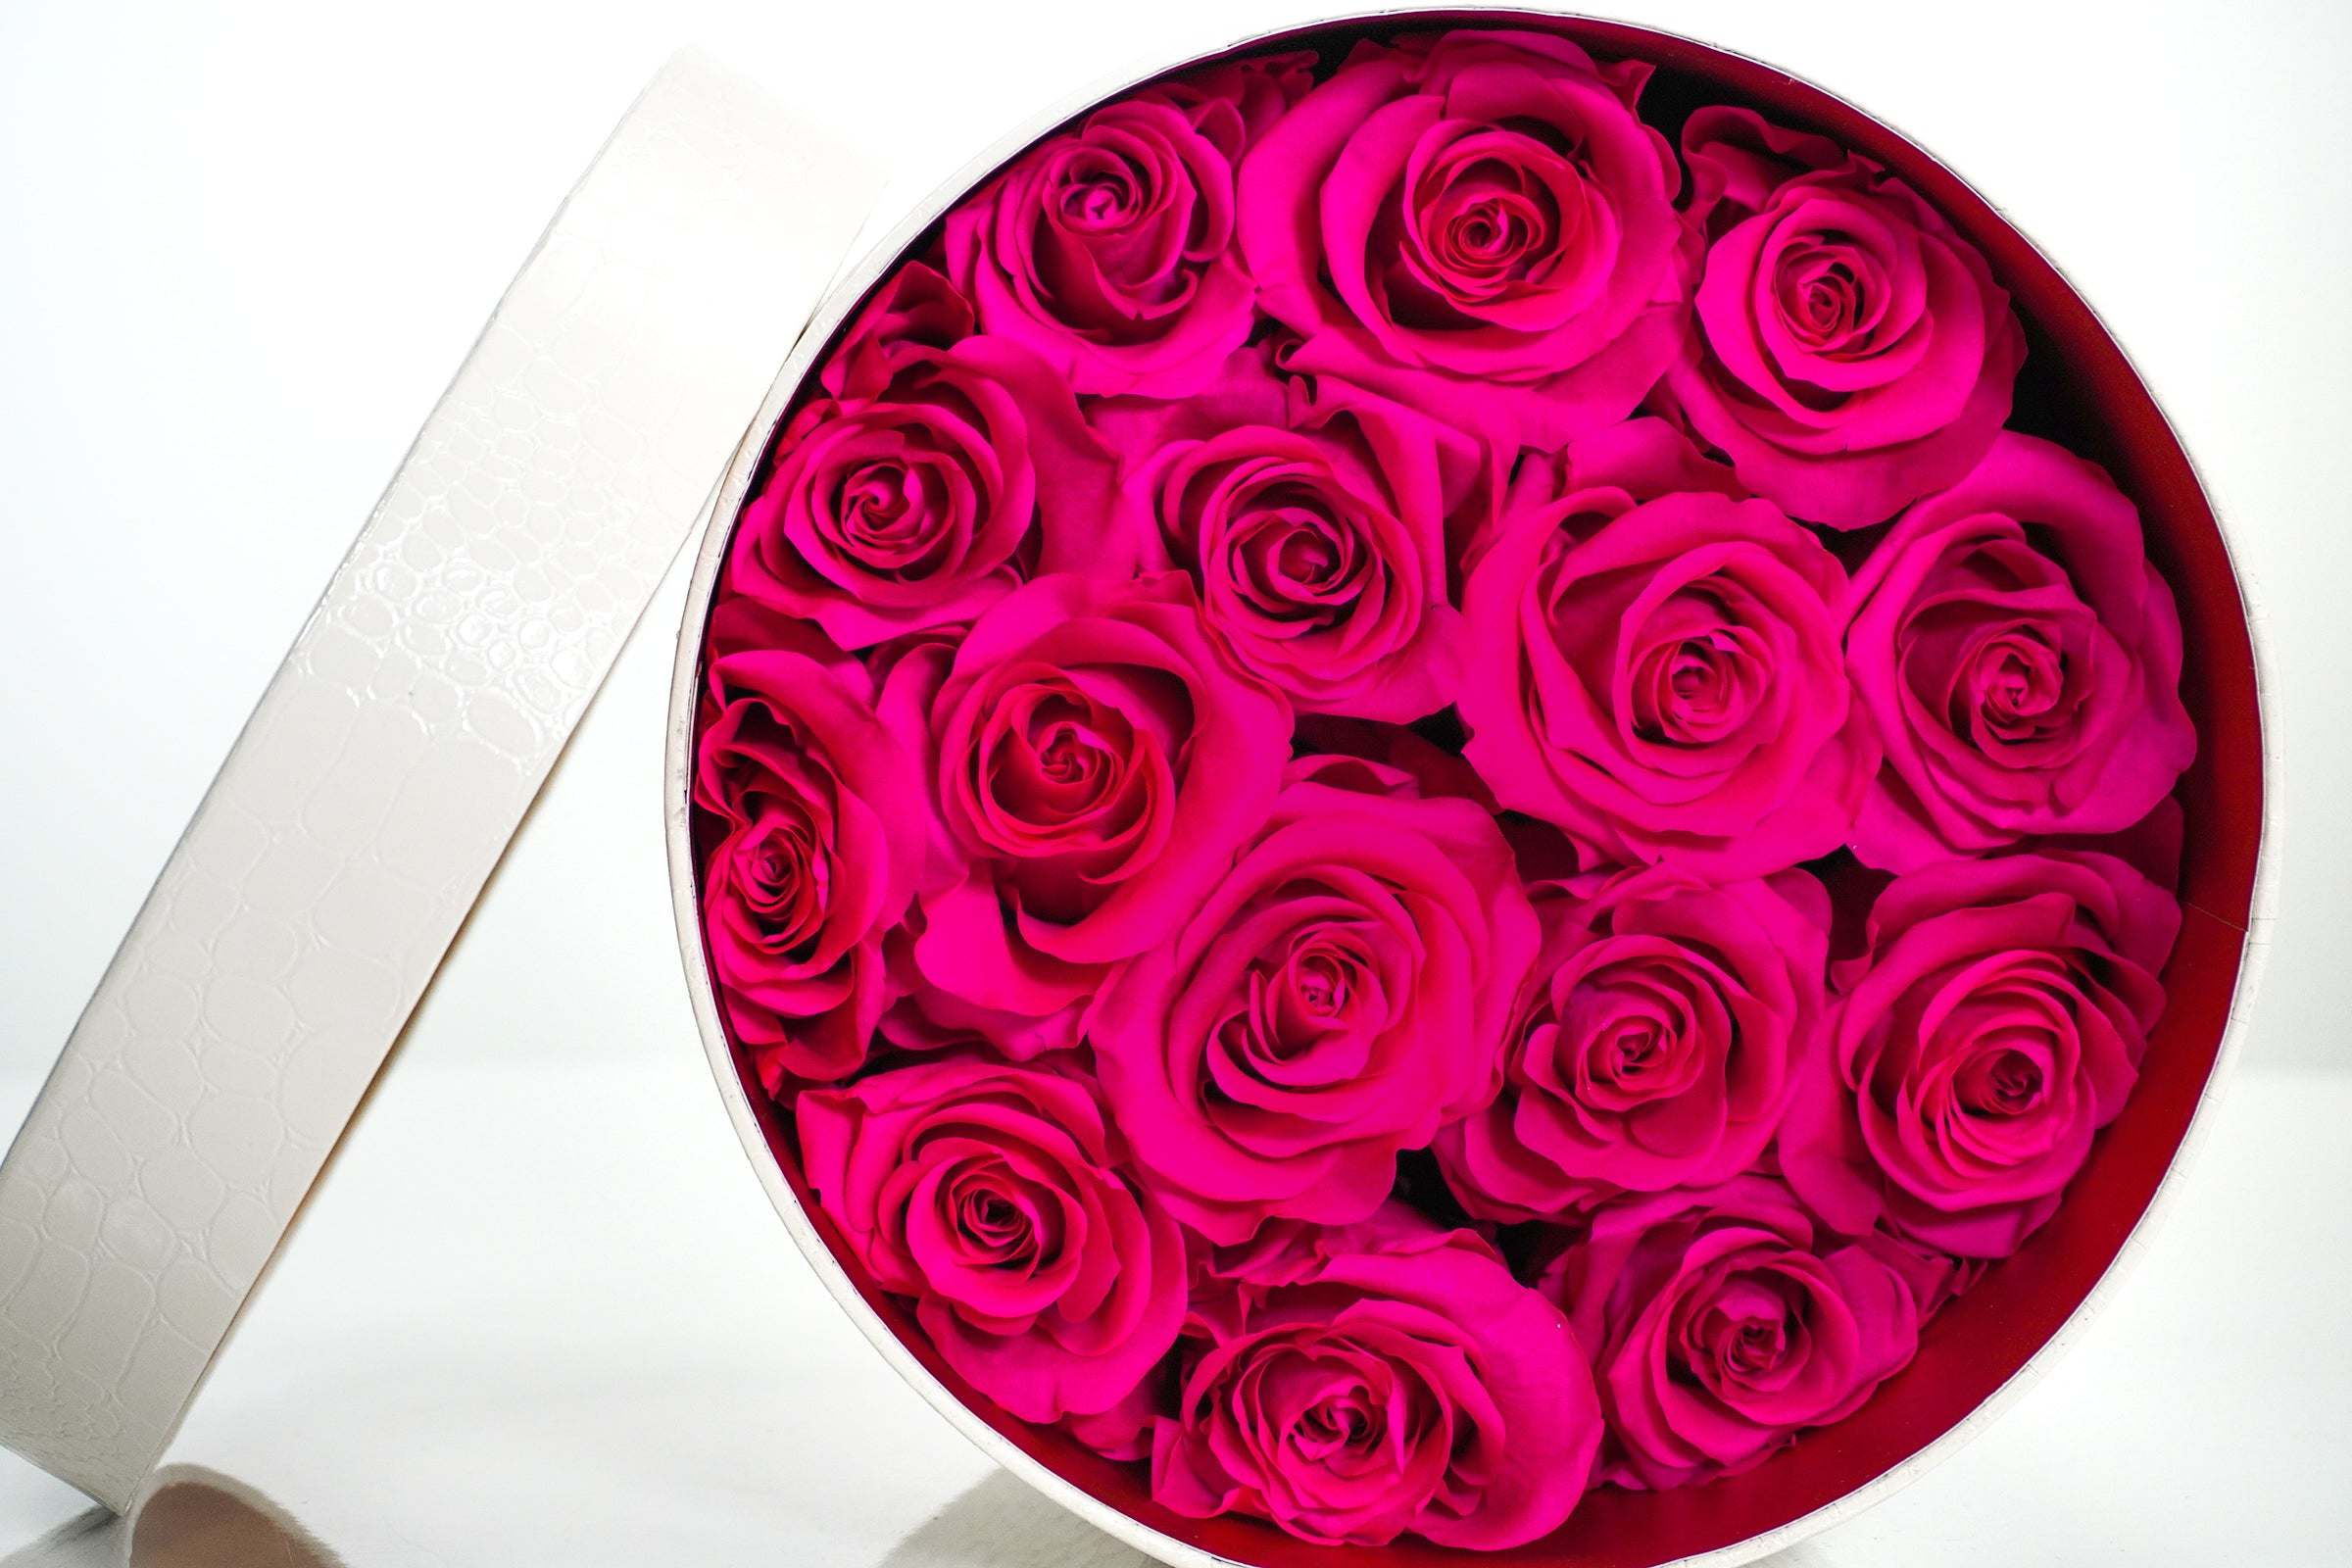 Classic White Round - Hot Pink Rose Top View with Lid